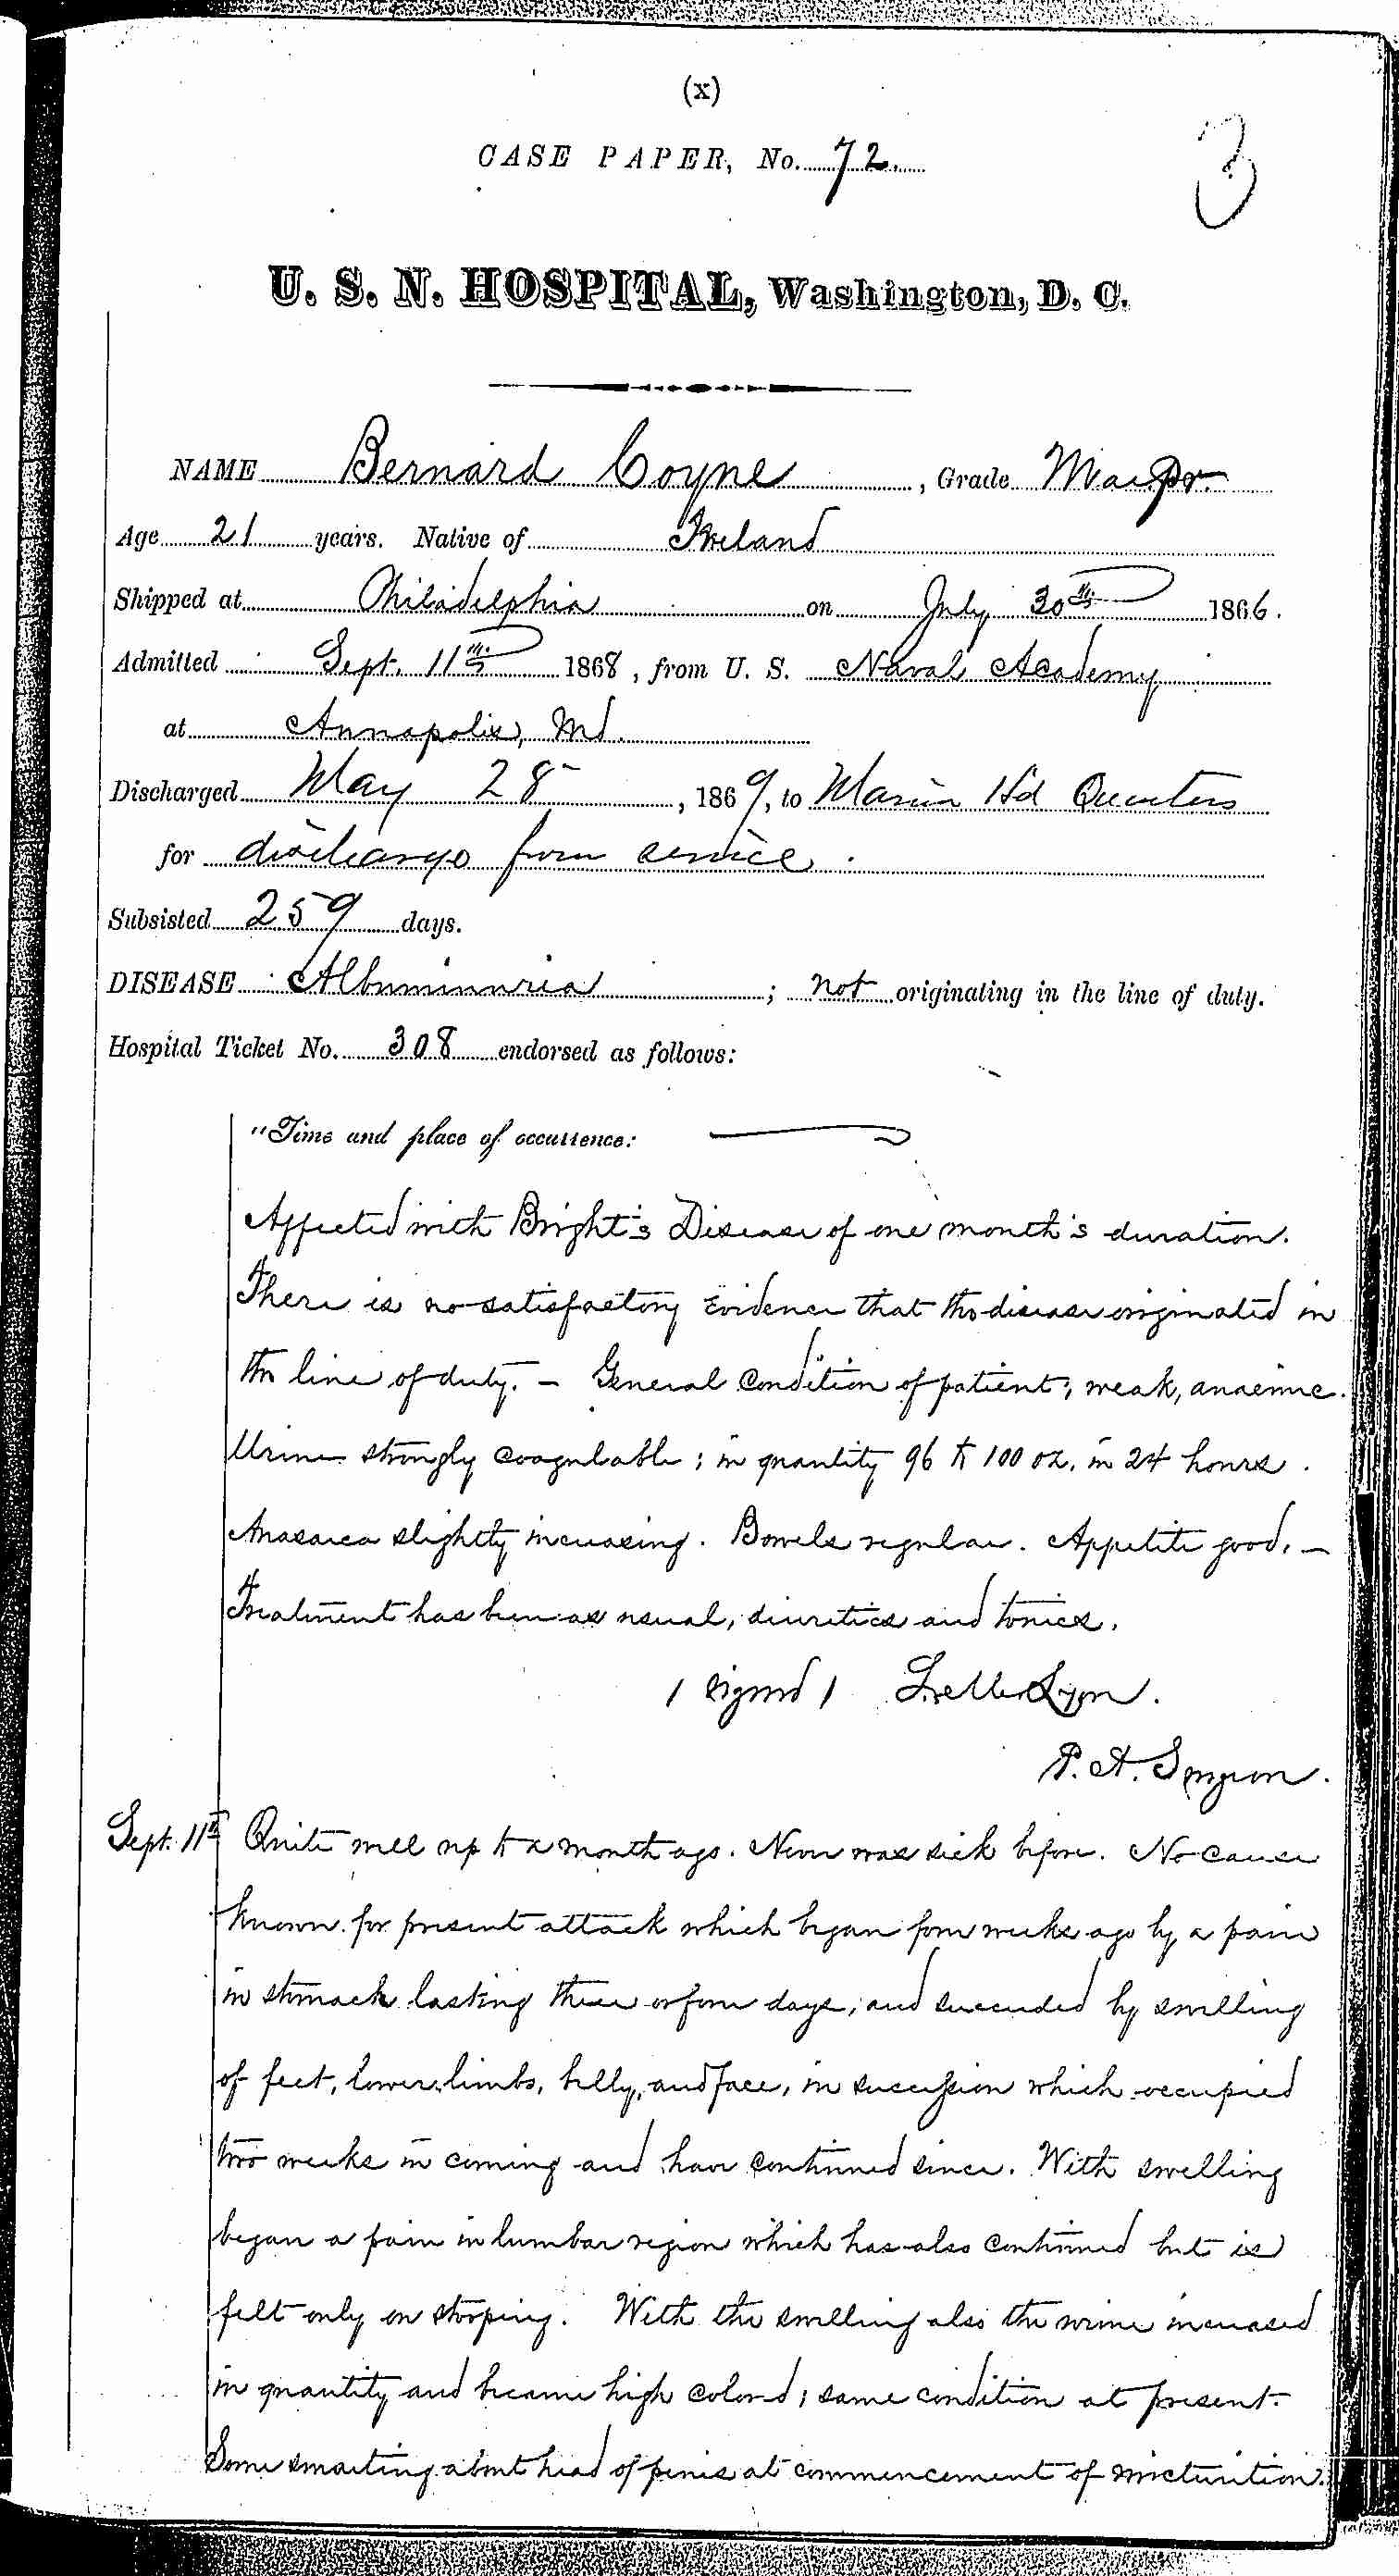 Entry for Bernard Coyne (page 1 of 13) in the log Hospital Tickets and Case Papers - Naval Hospital - Washington, D.C. - 1868-69